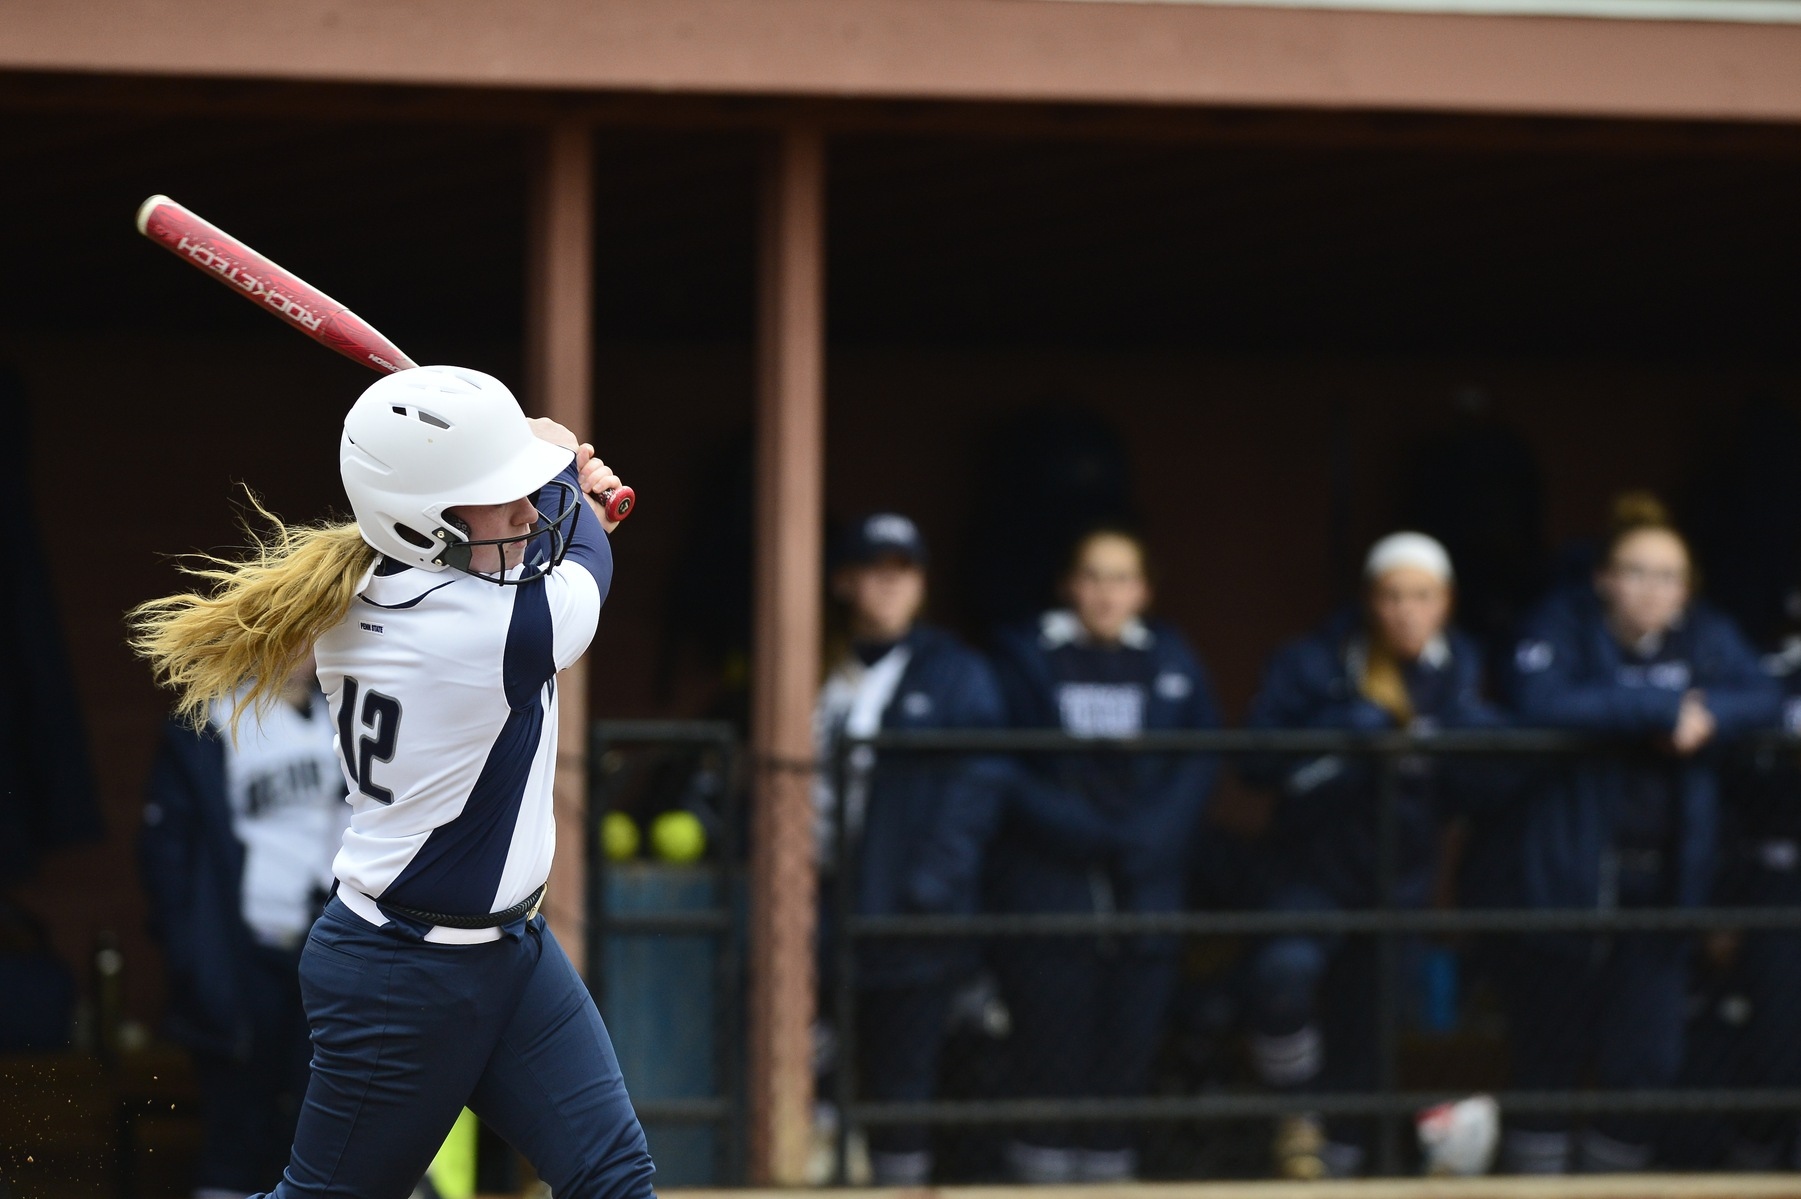 Lions Fall To Christopher Newport In Softball